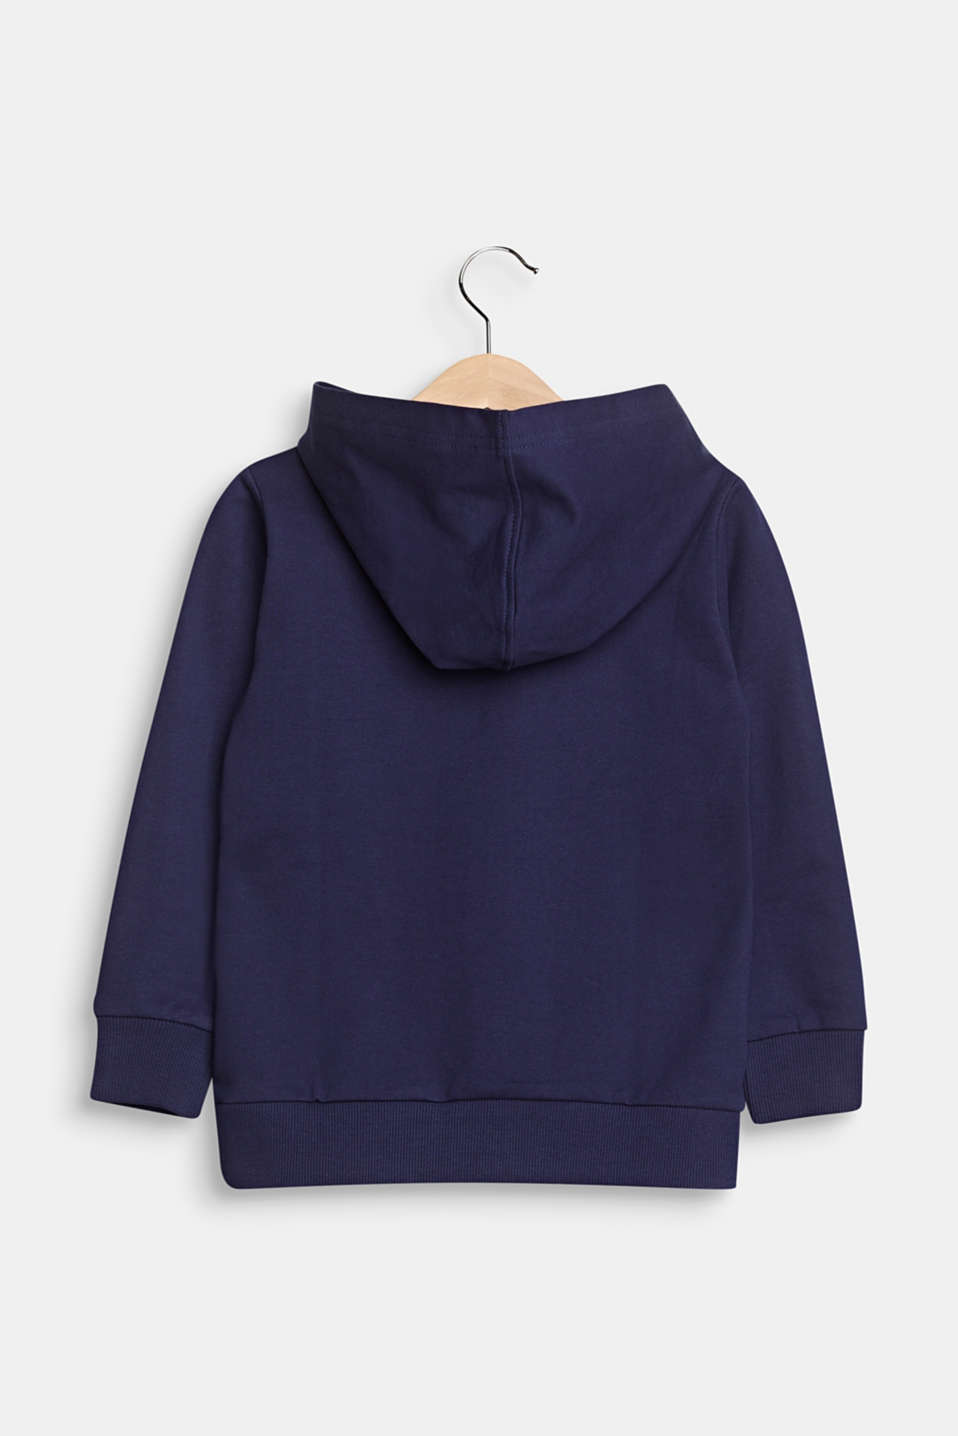 Sweatshirt hoodie with a turtle print, cotton, MIDNIGHT BLUE, detail image number 1